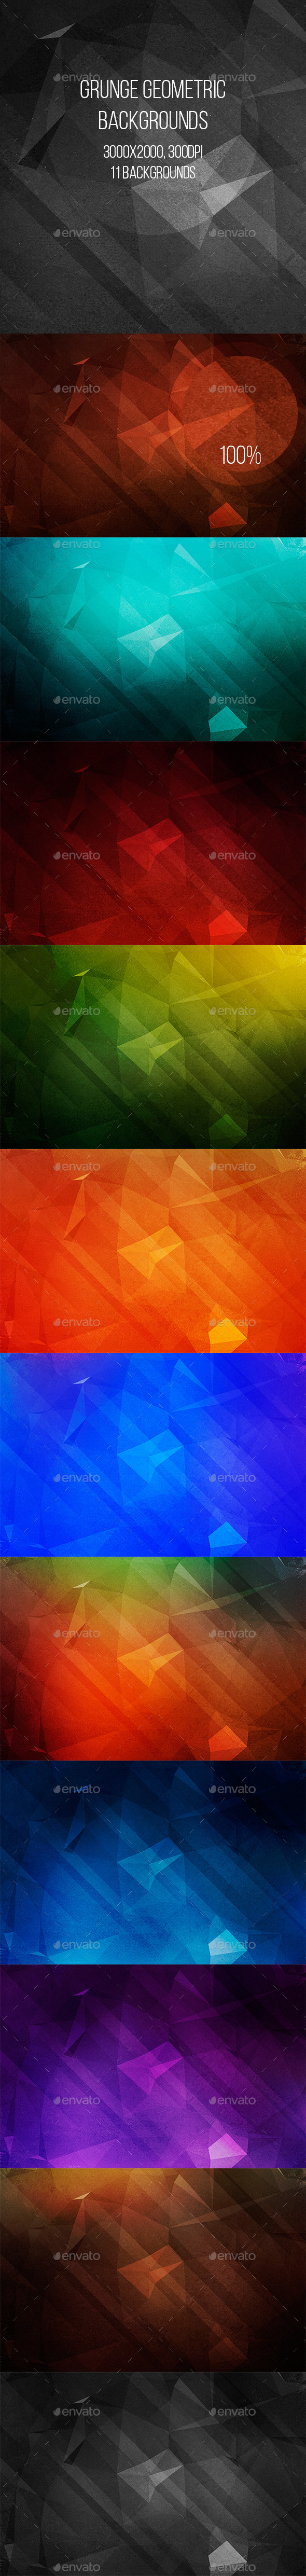 GraphicRiver Grunge Geometric Backgrounds 9593102